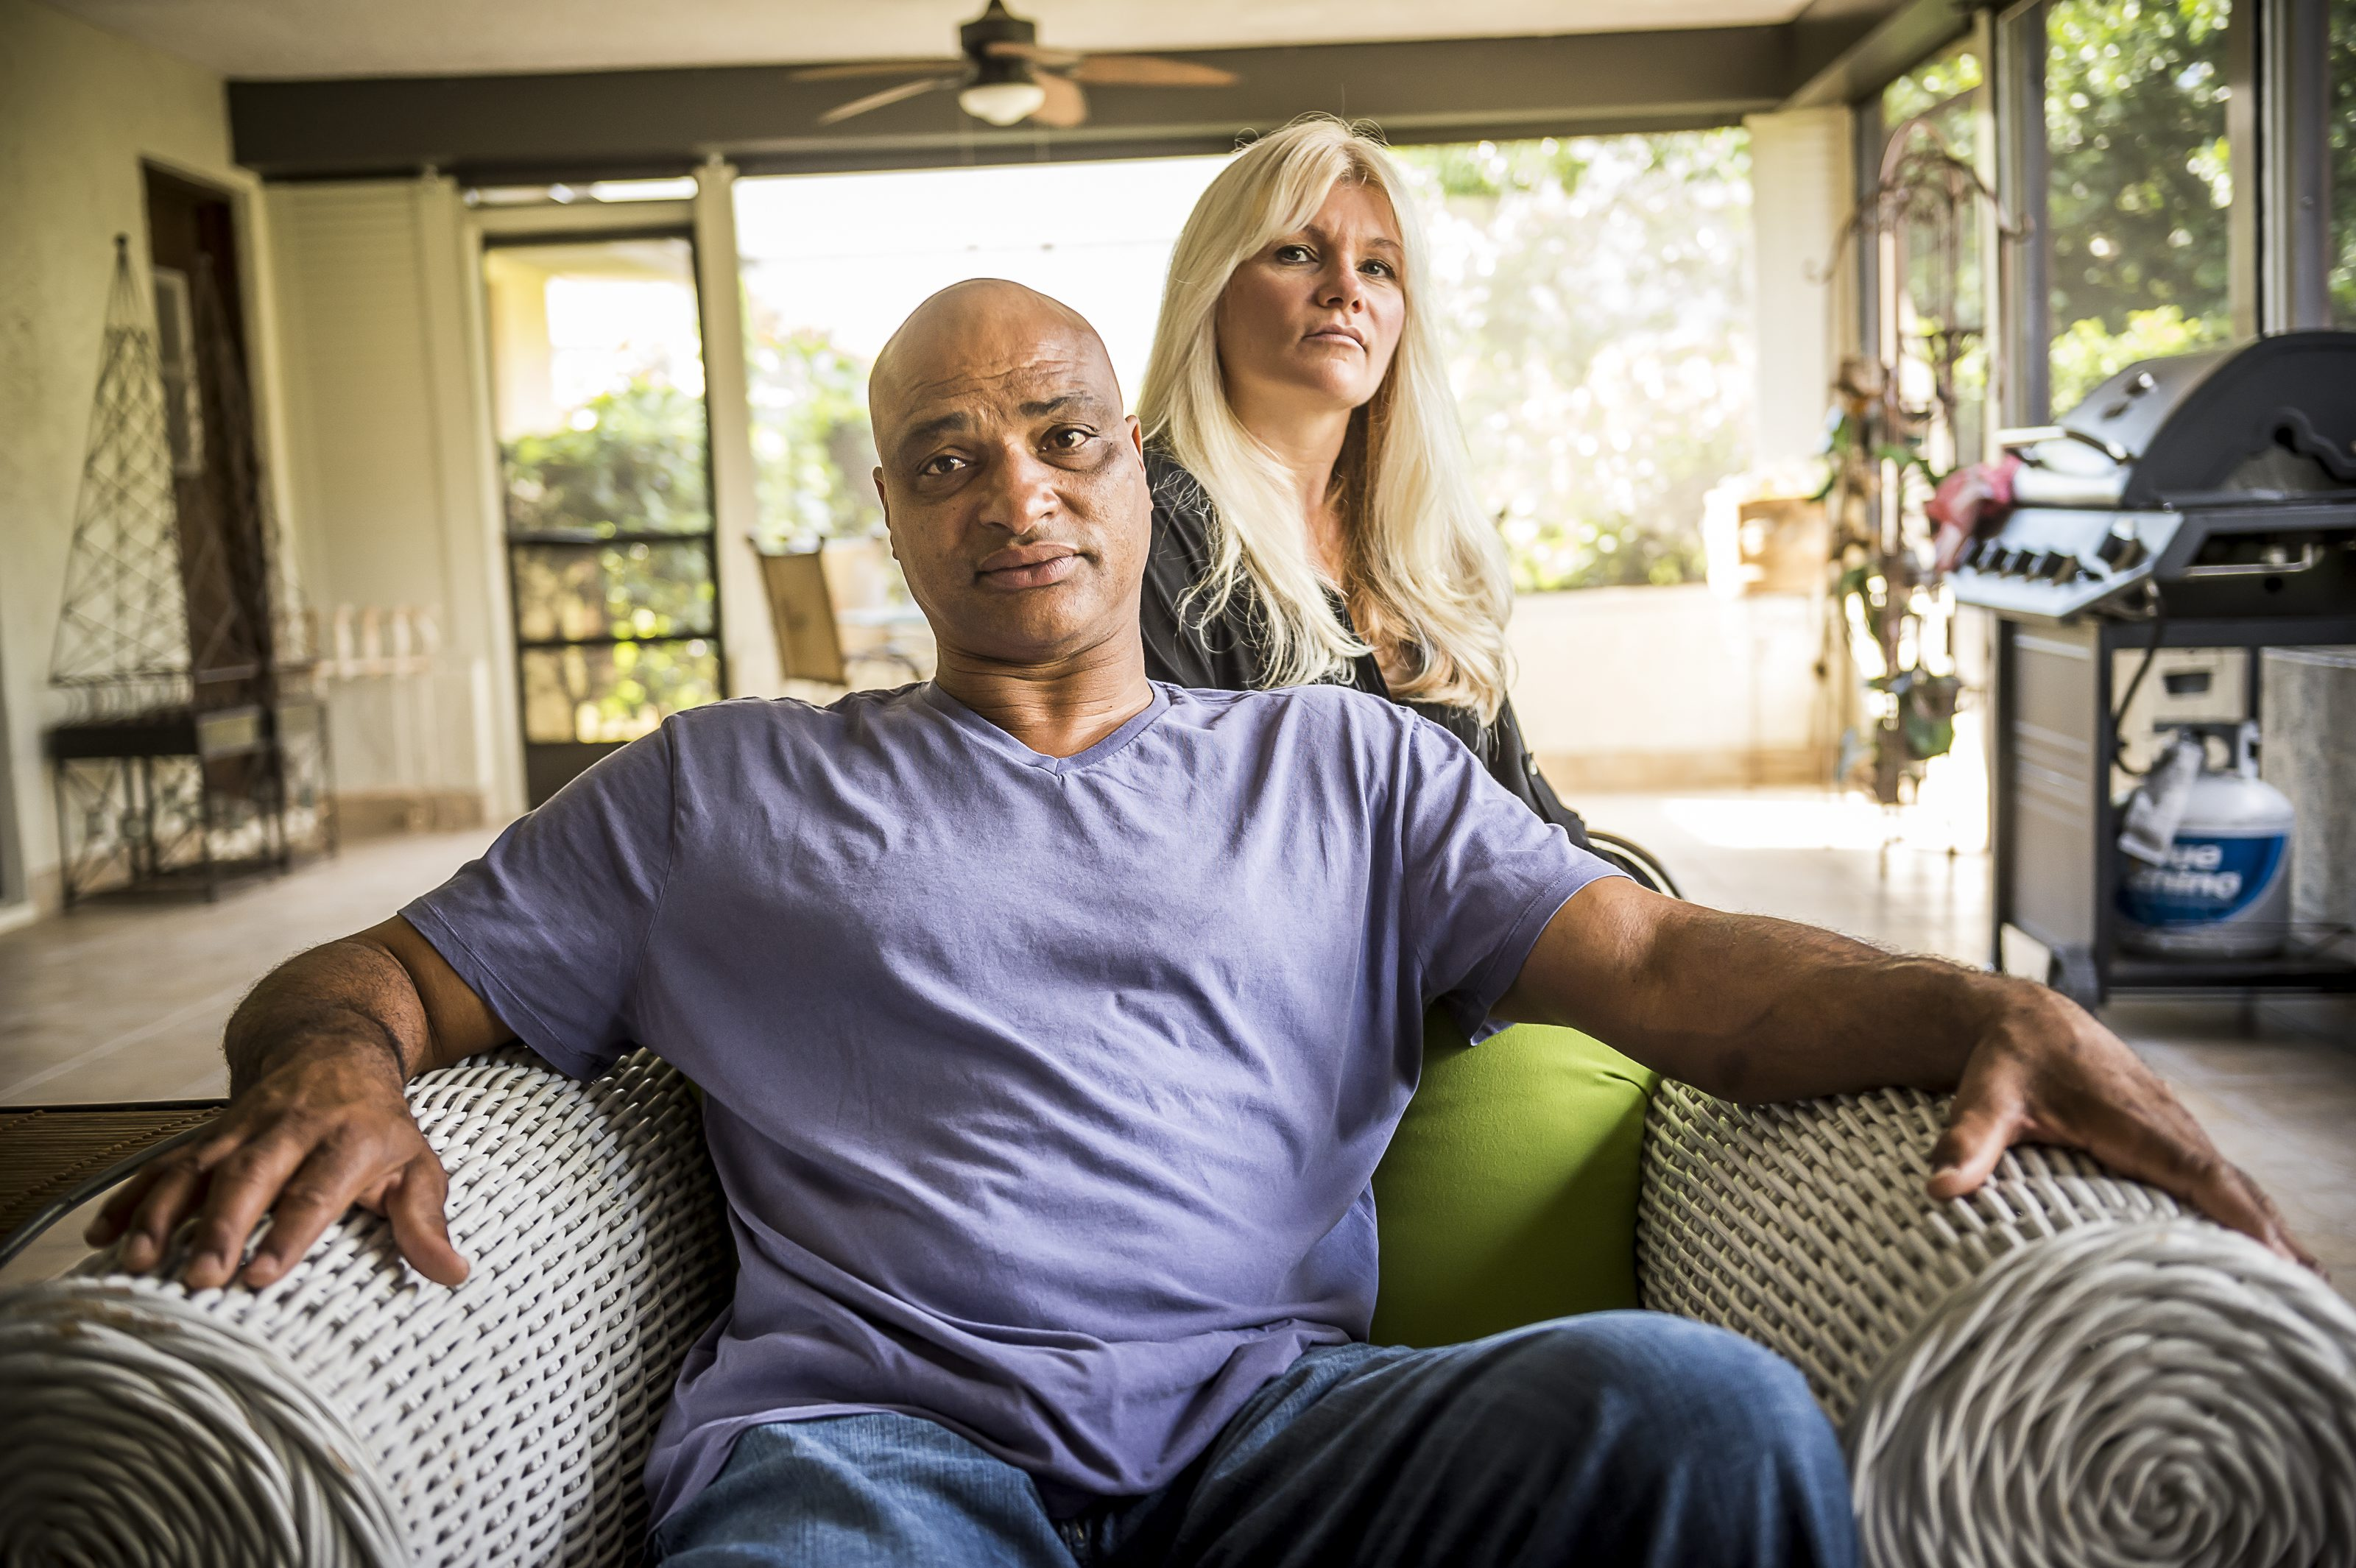 Welcome new rules in the NFL are meant to decreased the risks of concussions, such as those suffered by Bills great Darryl Talley, shown with his wife, Janine. (Roberto Gonzalez/Special to The News)